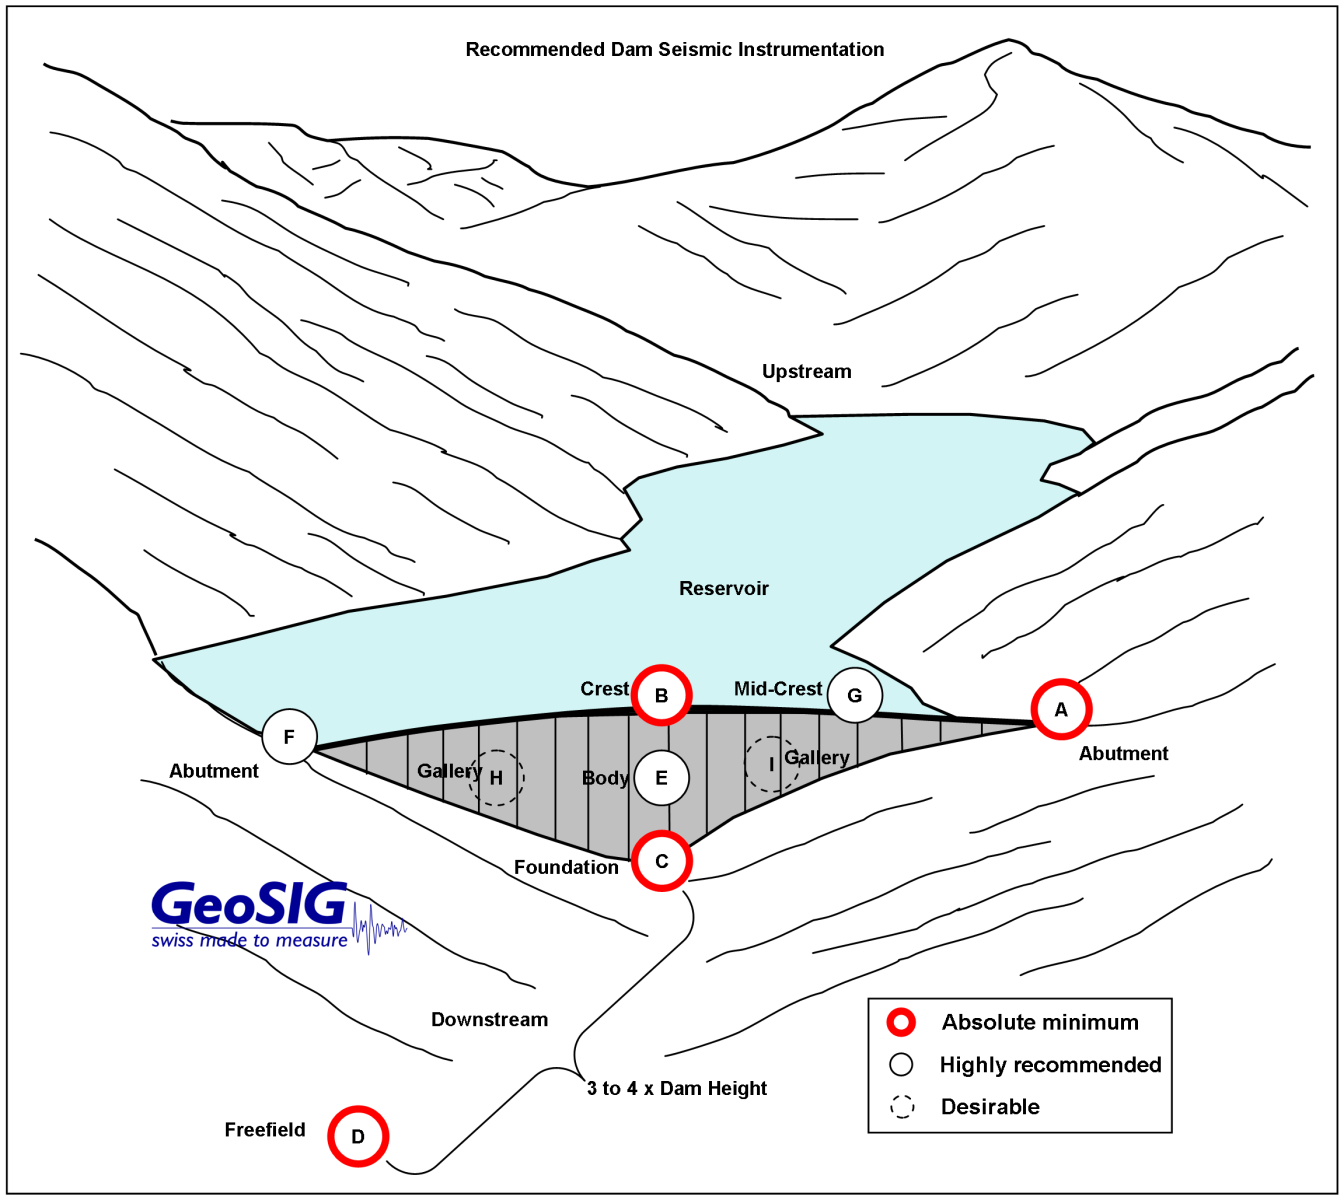 Geosig Offers Structural Monitoring Solutions For Dams In The Event Displacementtypeaccelerometercircuitdiagrampng At Each Measuring Point A High Dynamic Mechanical Force Balance Accelerometer Is Deployed These Devices Collect Raw Acceleration Data And Transfer It To